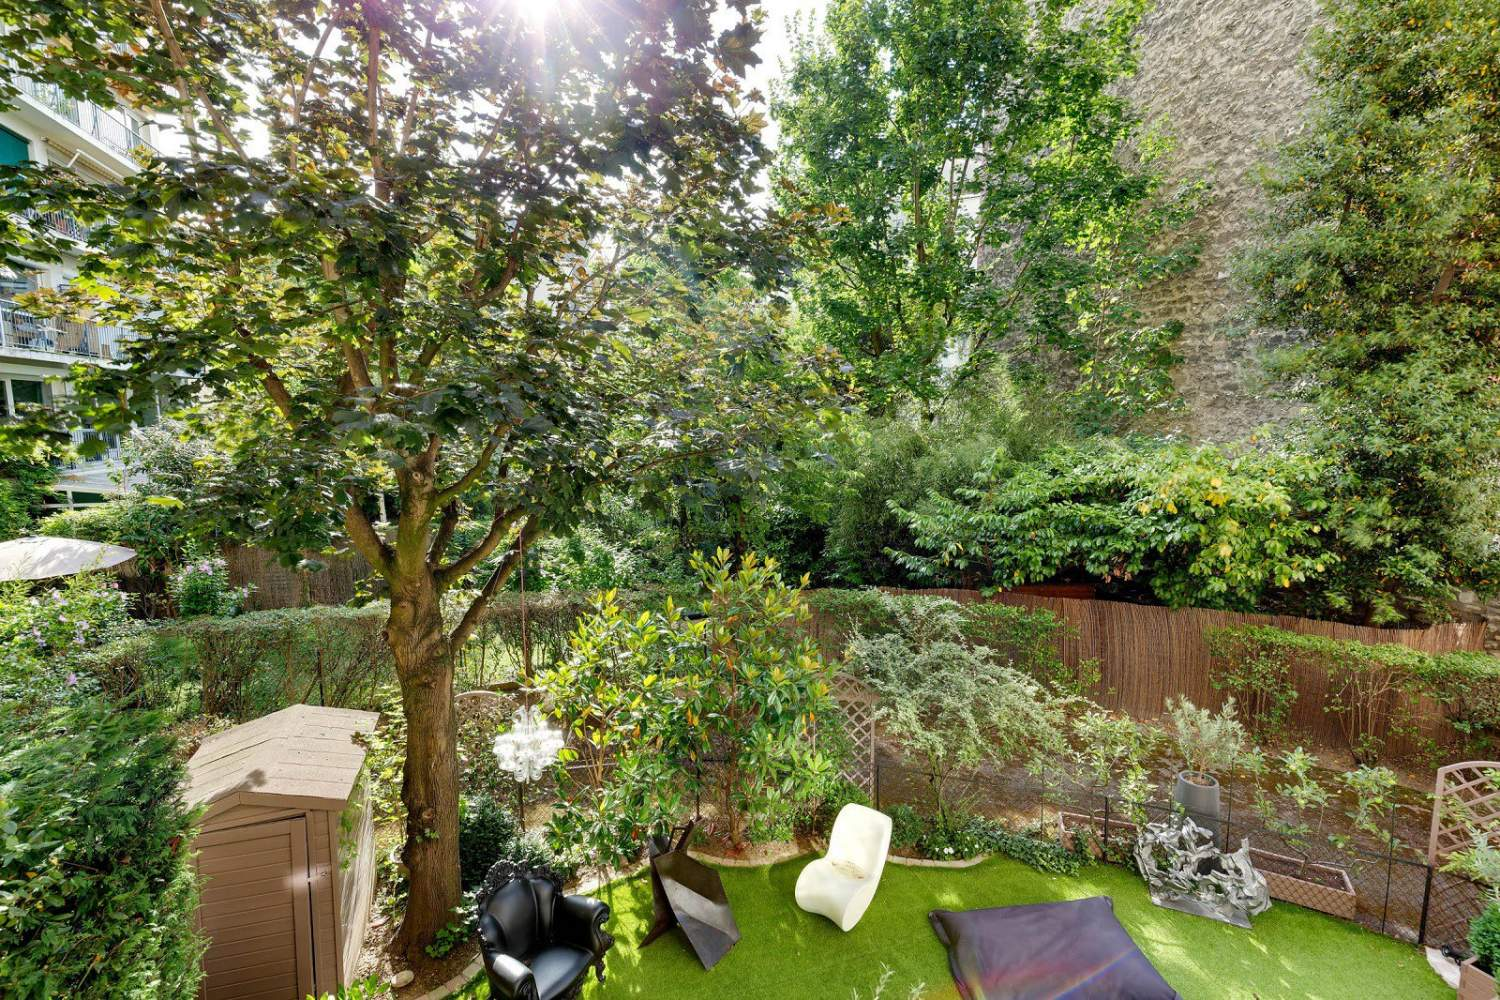 BOULOGNE NORTH ESCUDIER - 764 sq ft APARTMENT / 2 BEDROOMS OVERLOOKING GARDEN - PARKING picture 4